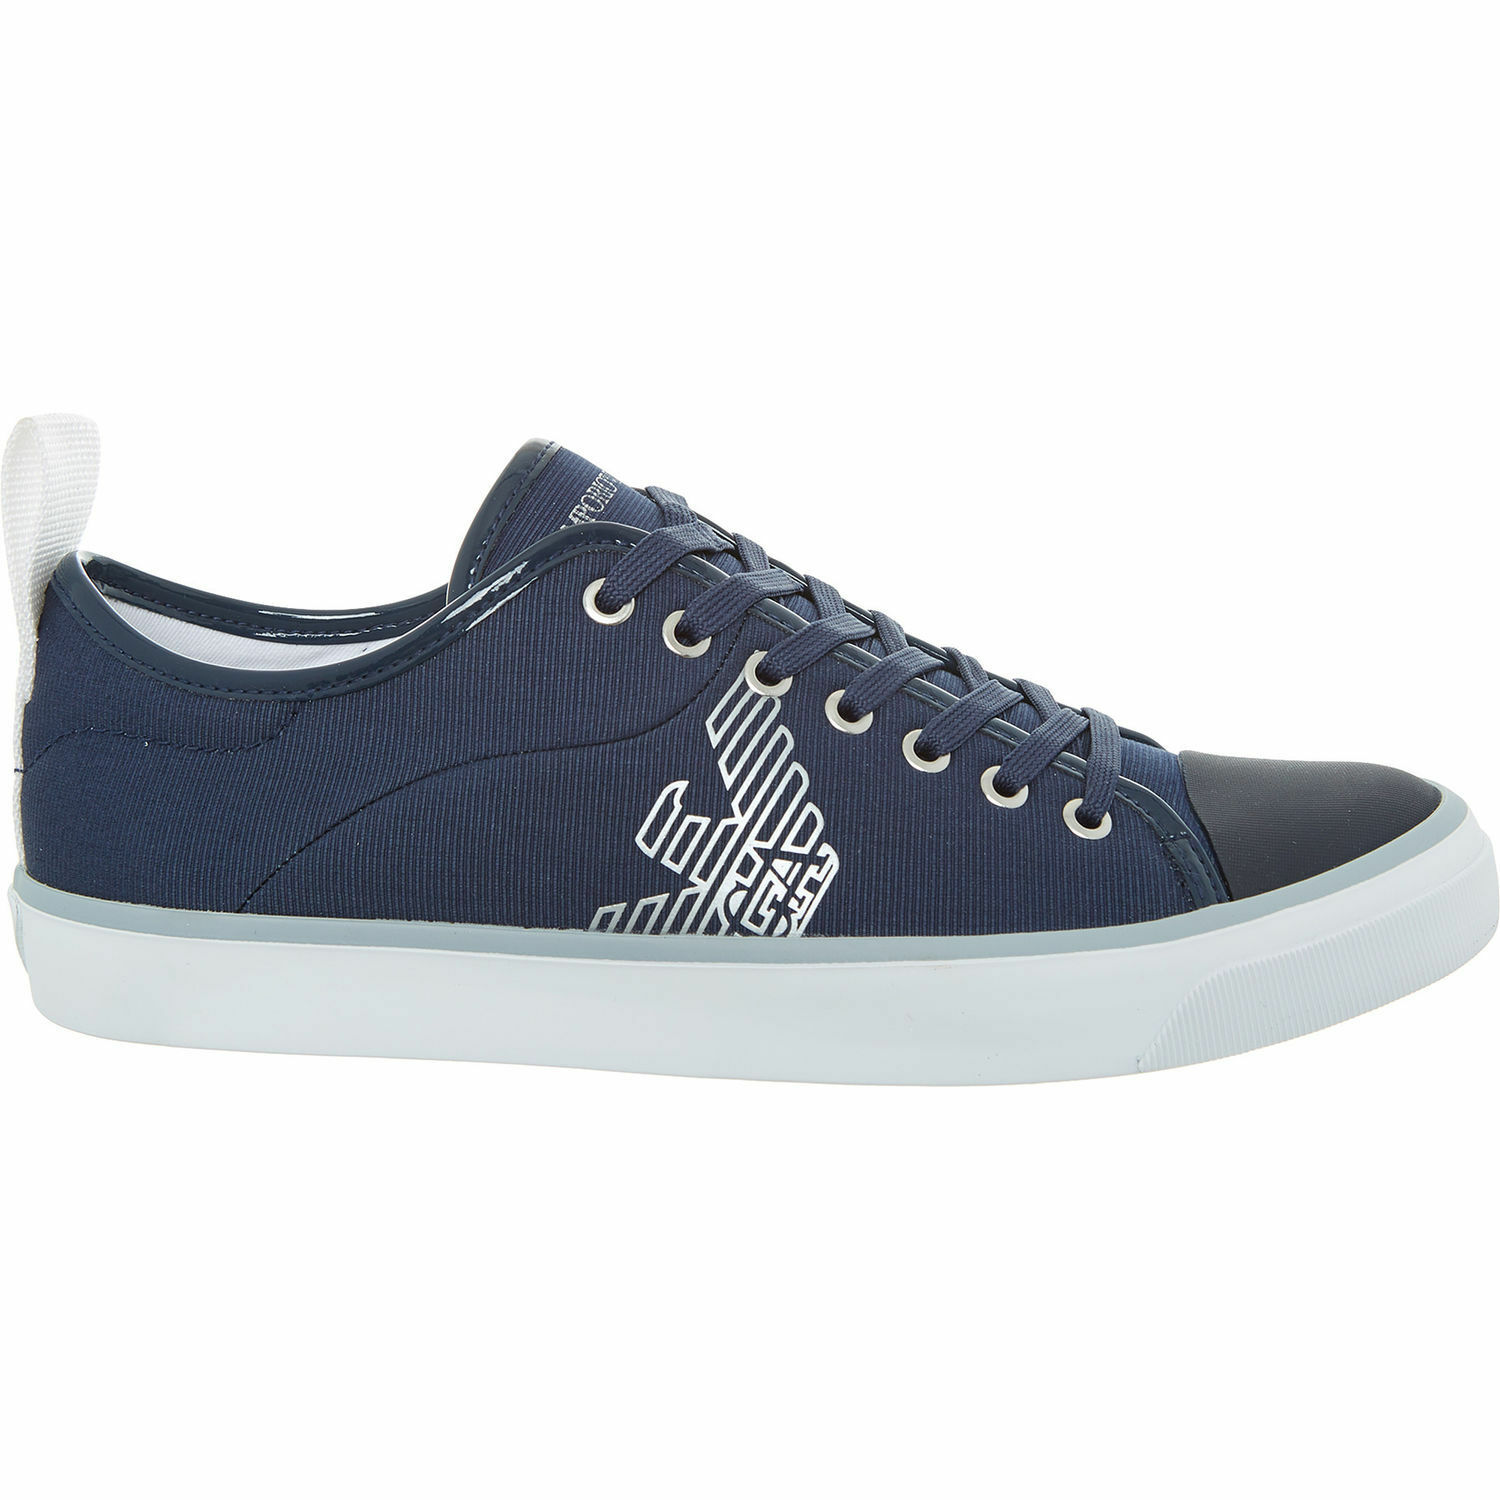 6e87530f1d Genuine EMPORIO Women's Navy Logo UK 3 5 ARMANI Trainers nzoaxk3554-Women's  Athletic Shoes